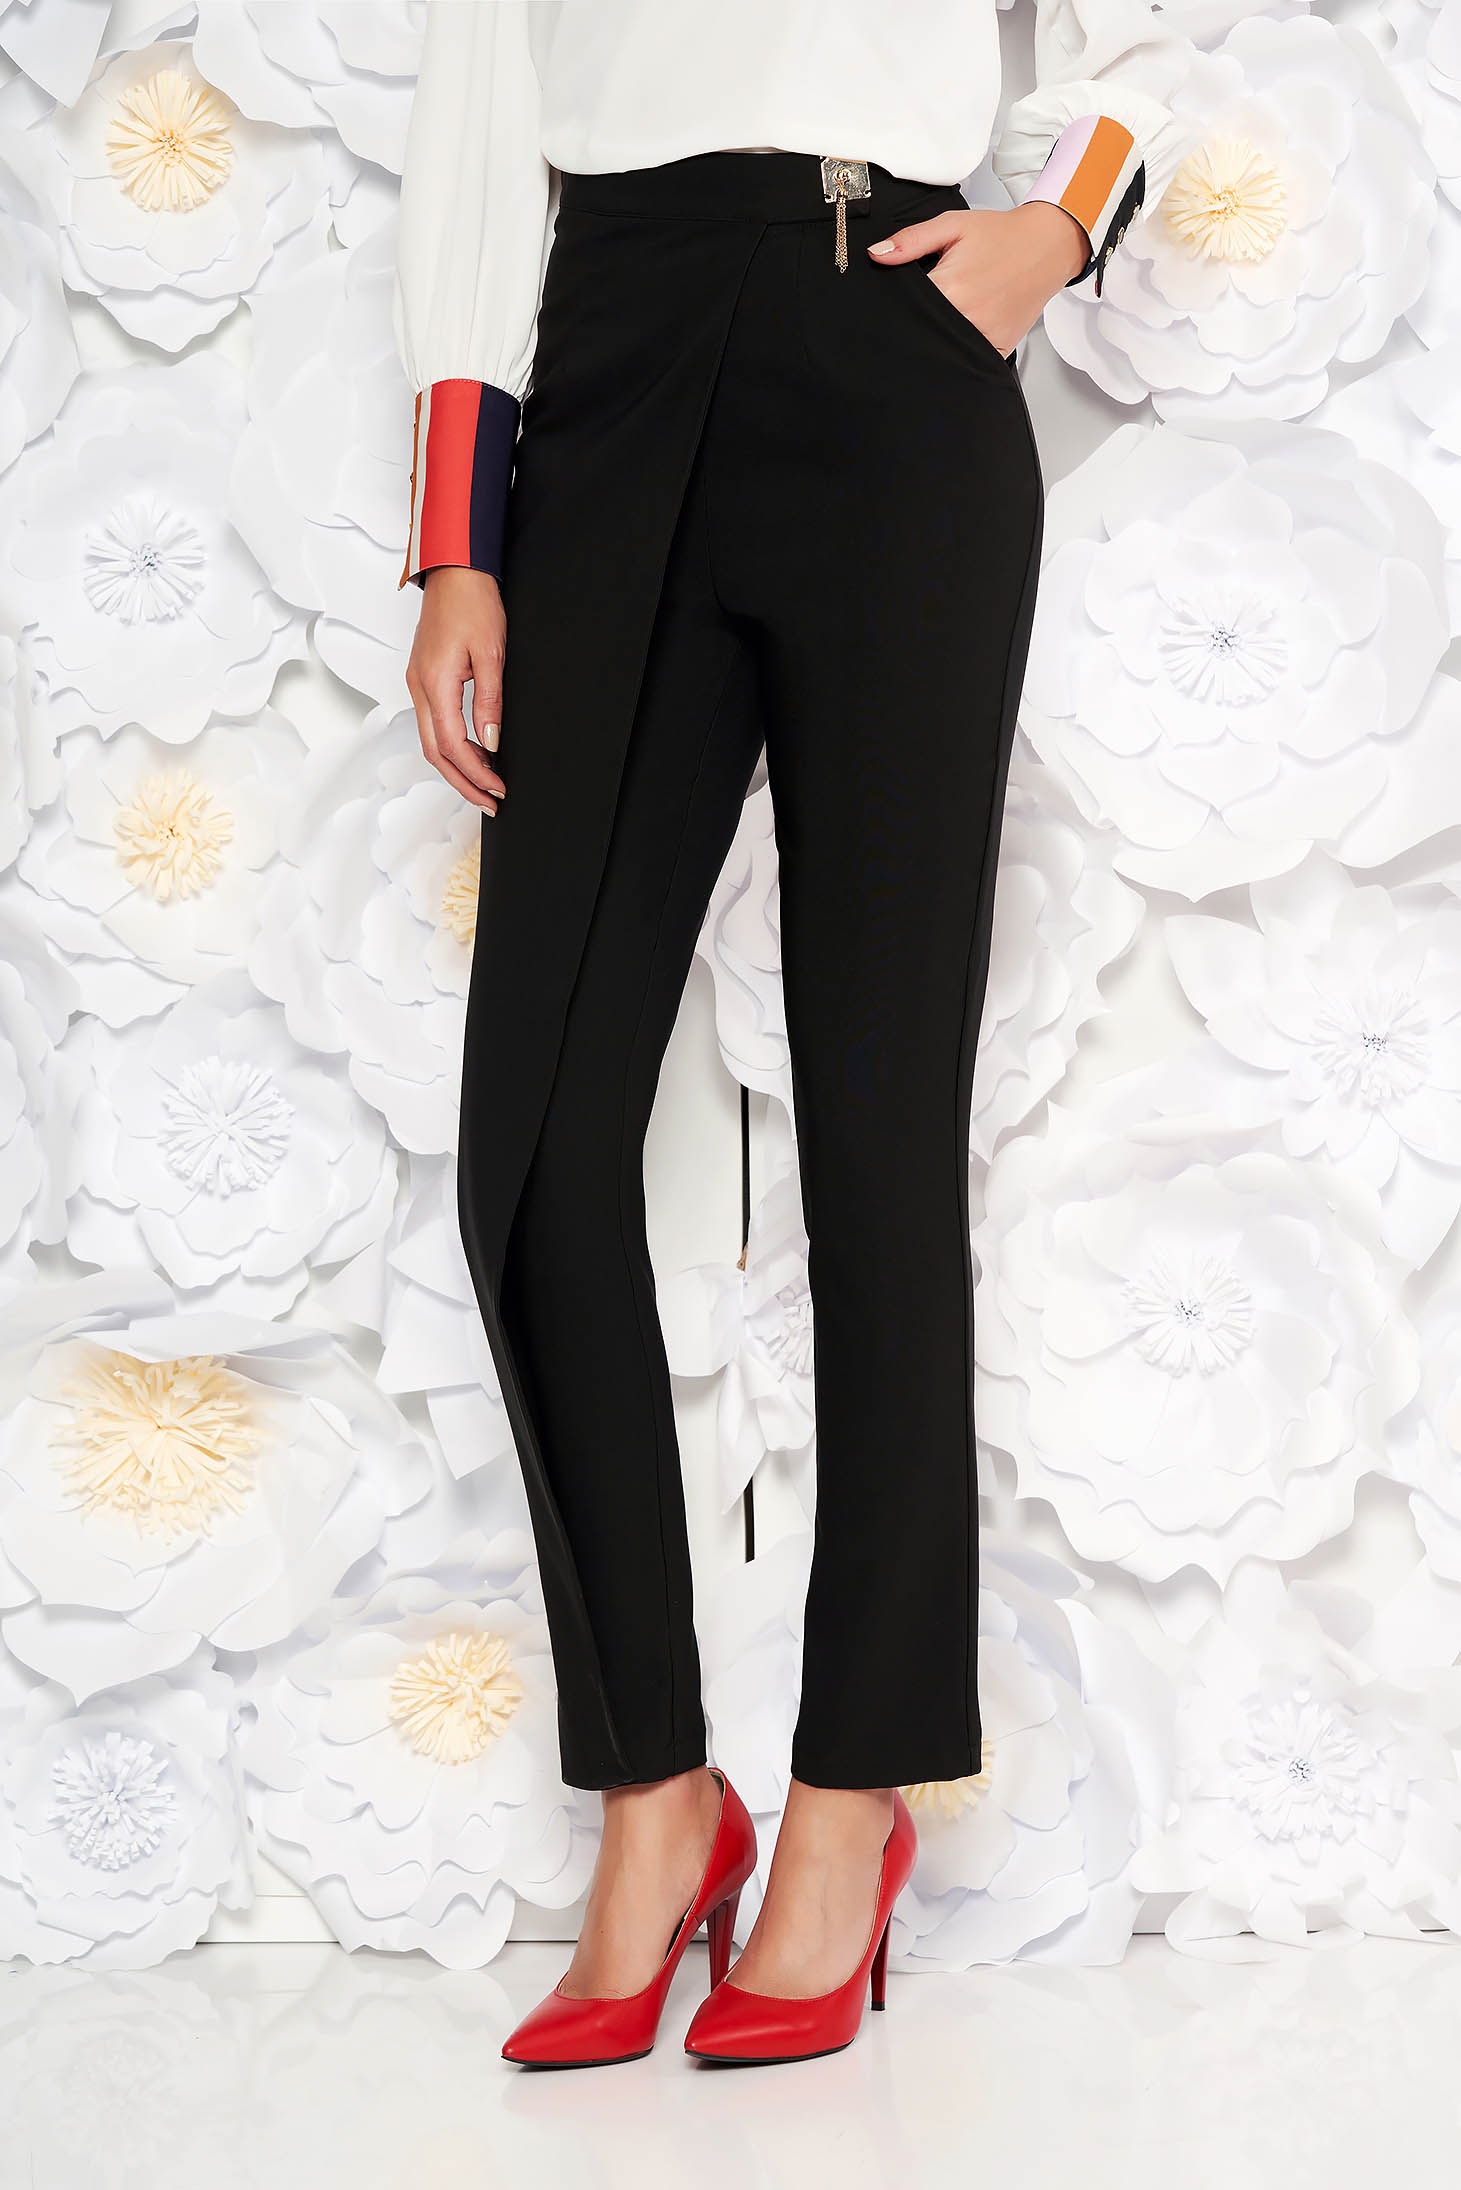 PrettyGirl black elegant high waisted trousers slightly elastic fabric with metalic accessory